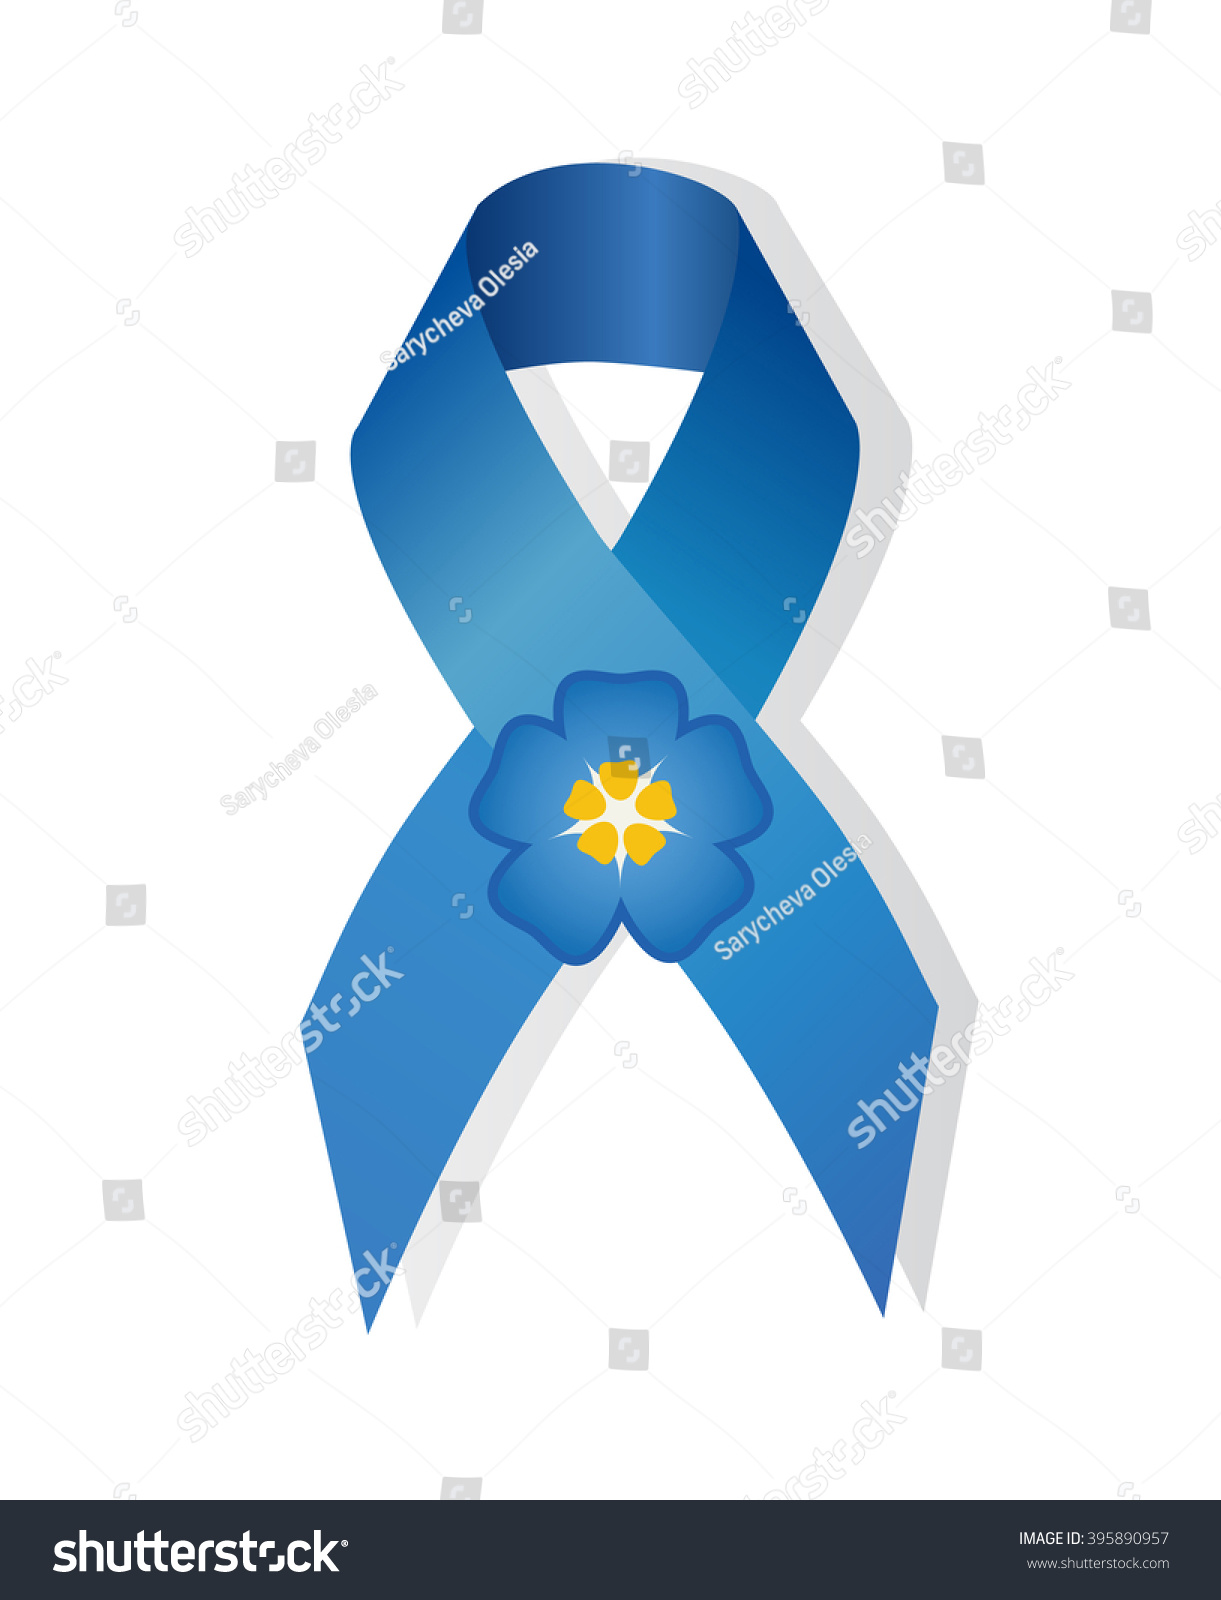 Blue awareness ribbon flower forgetme symbol stock illustration blue awareness ribbon and flower forget me symbol for missing children buycottarizona Image collections